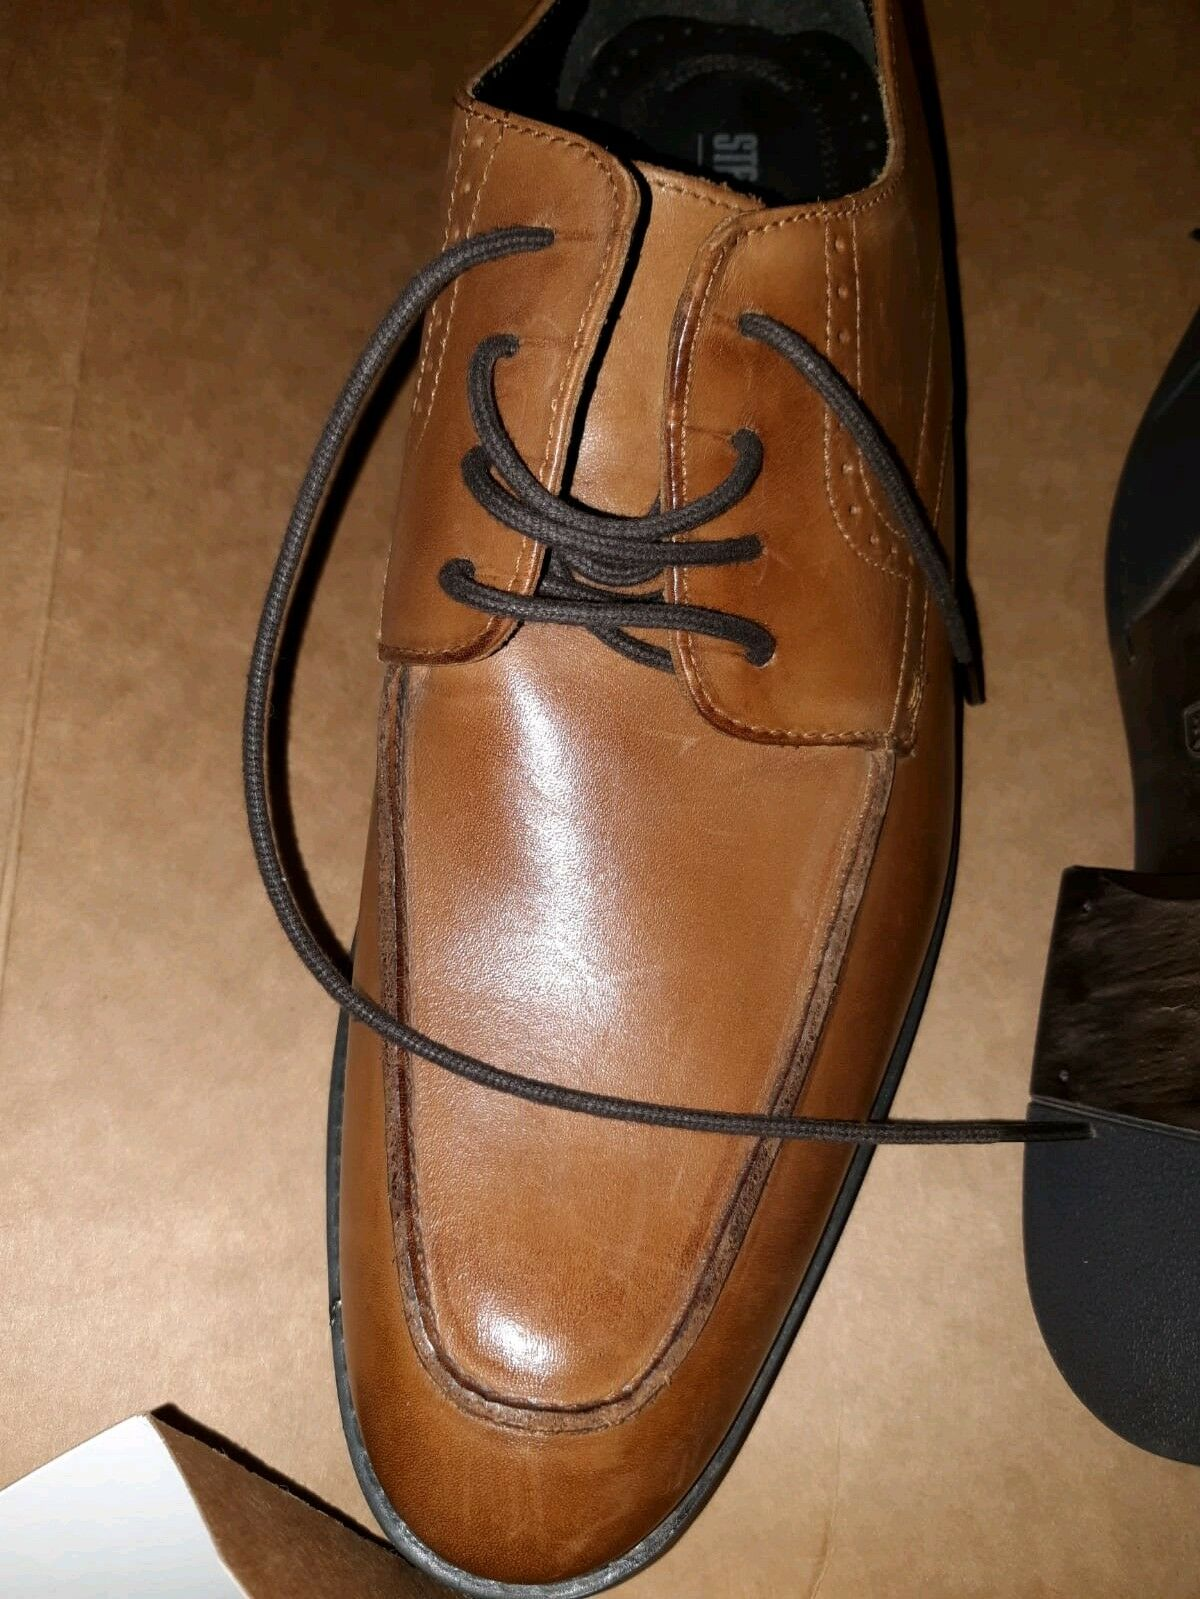 Stacy Adams Mens Dress shoes Tan Brown Leather Lace Up Size 9 M